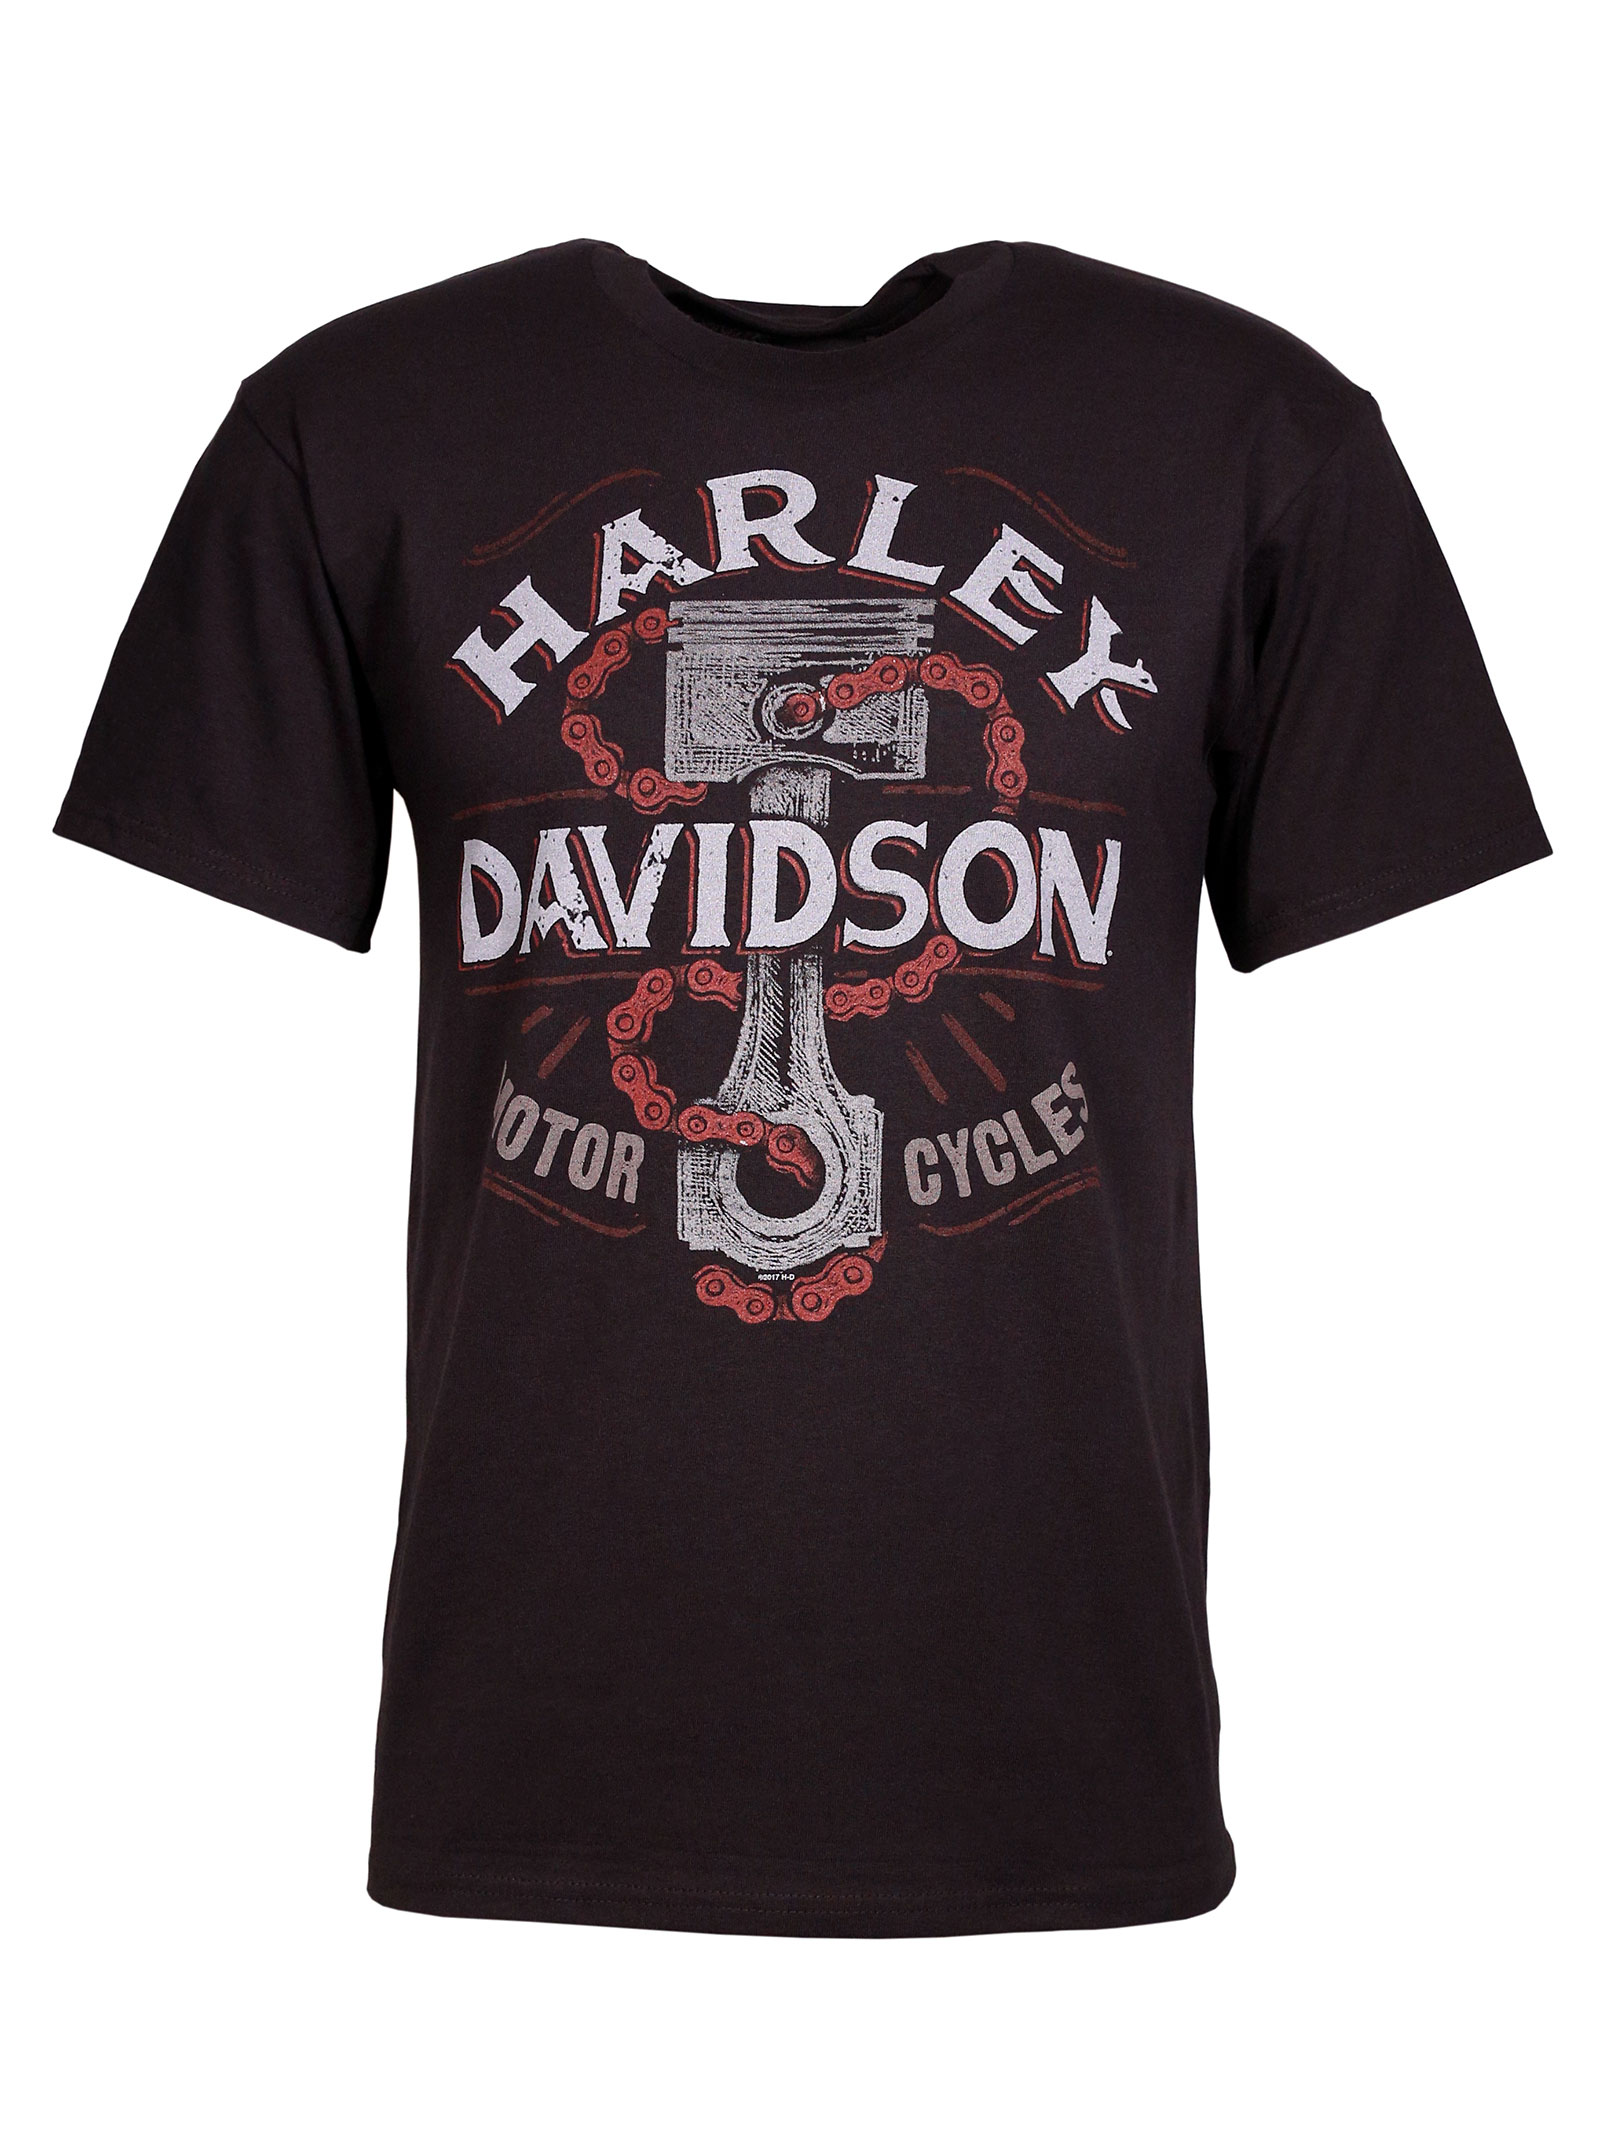 harley davidson t shirt dirt track at thunderbike shop. Black Bedroom Furniture Sets. Home Design Ideas